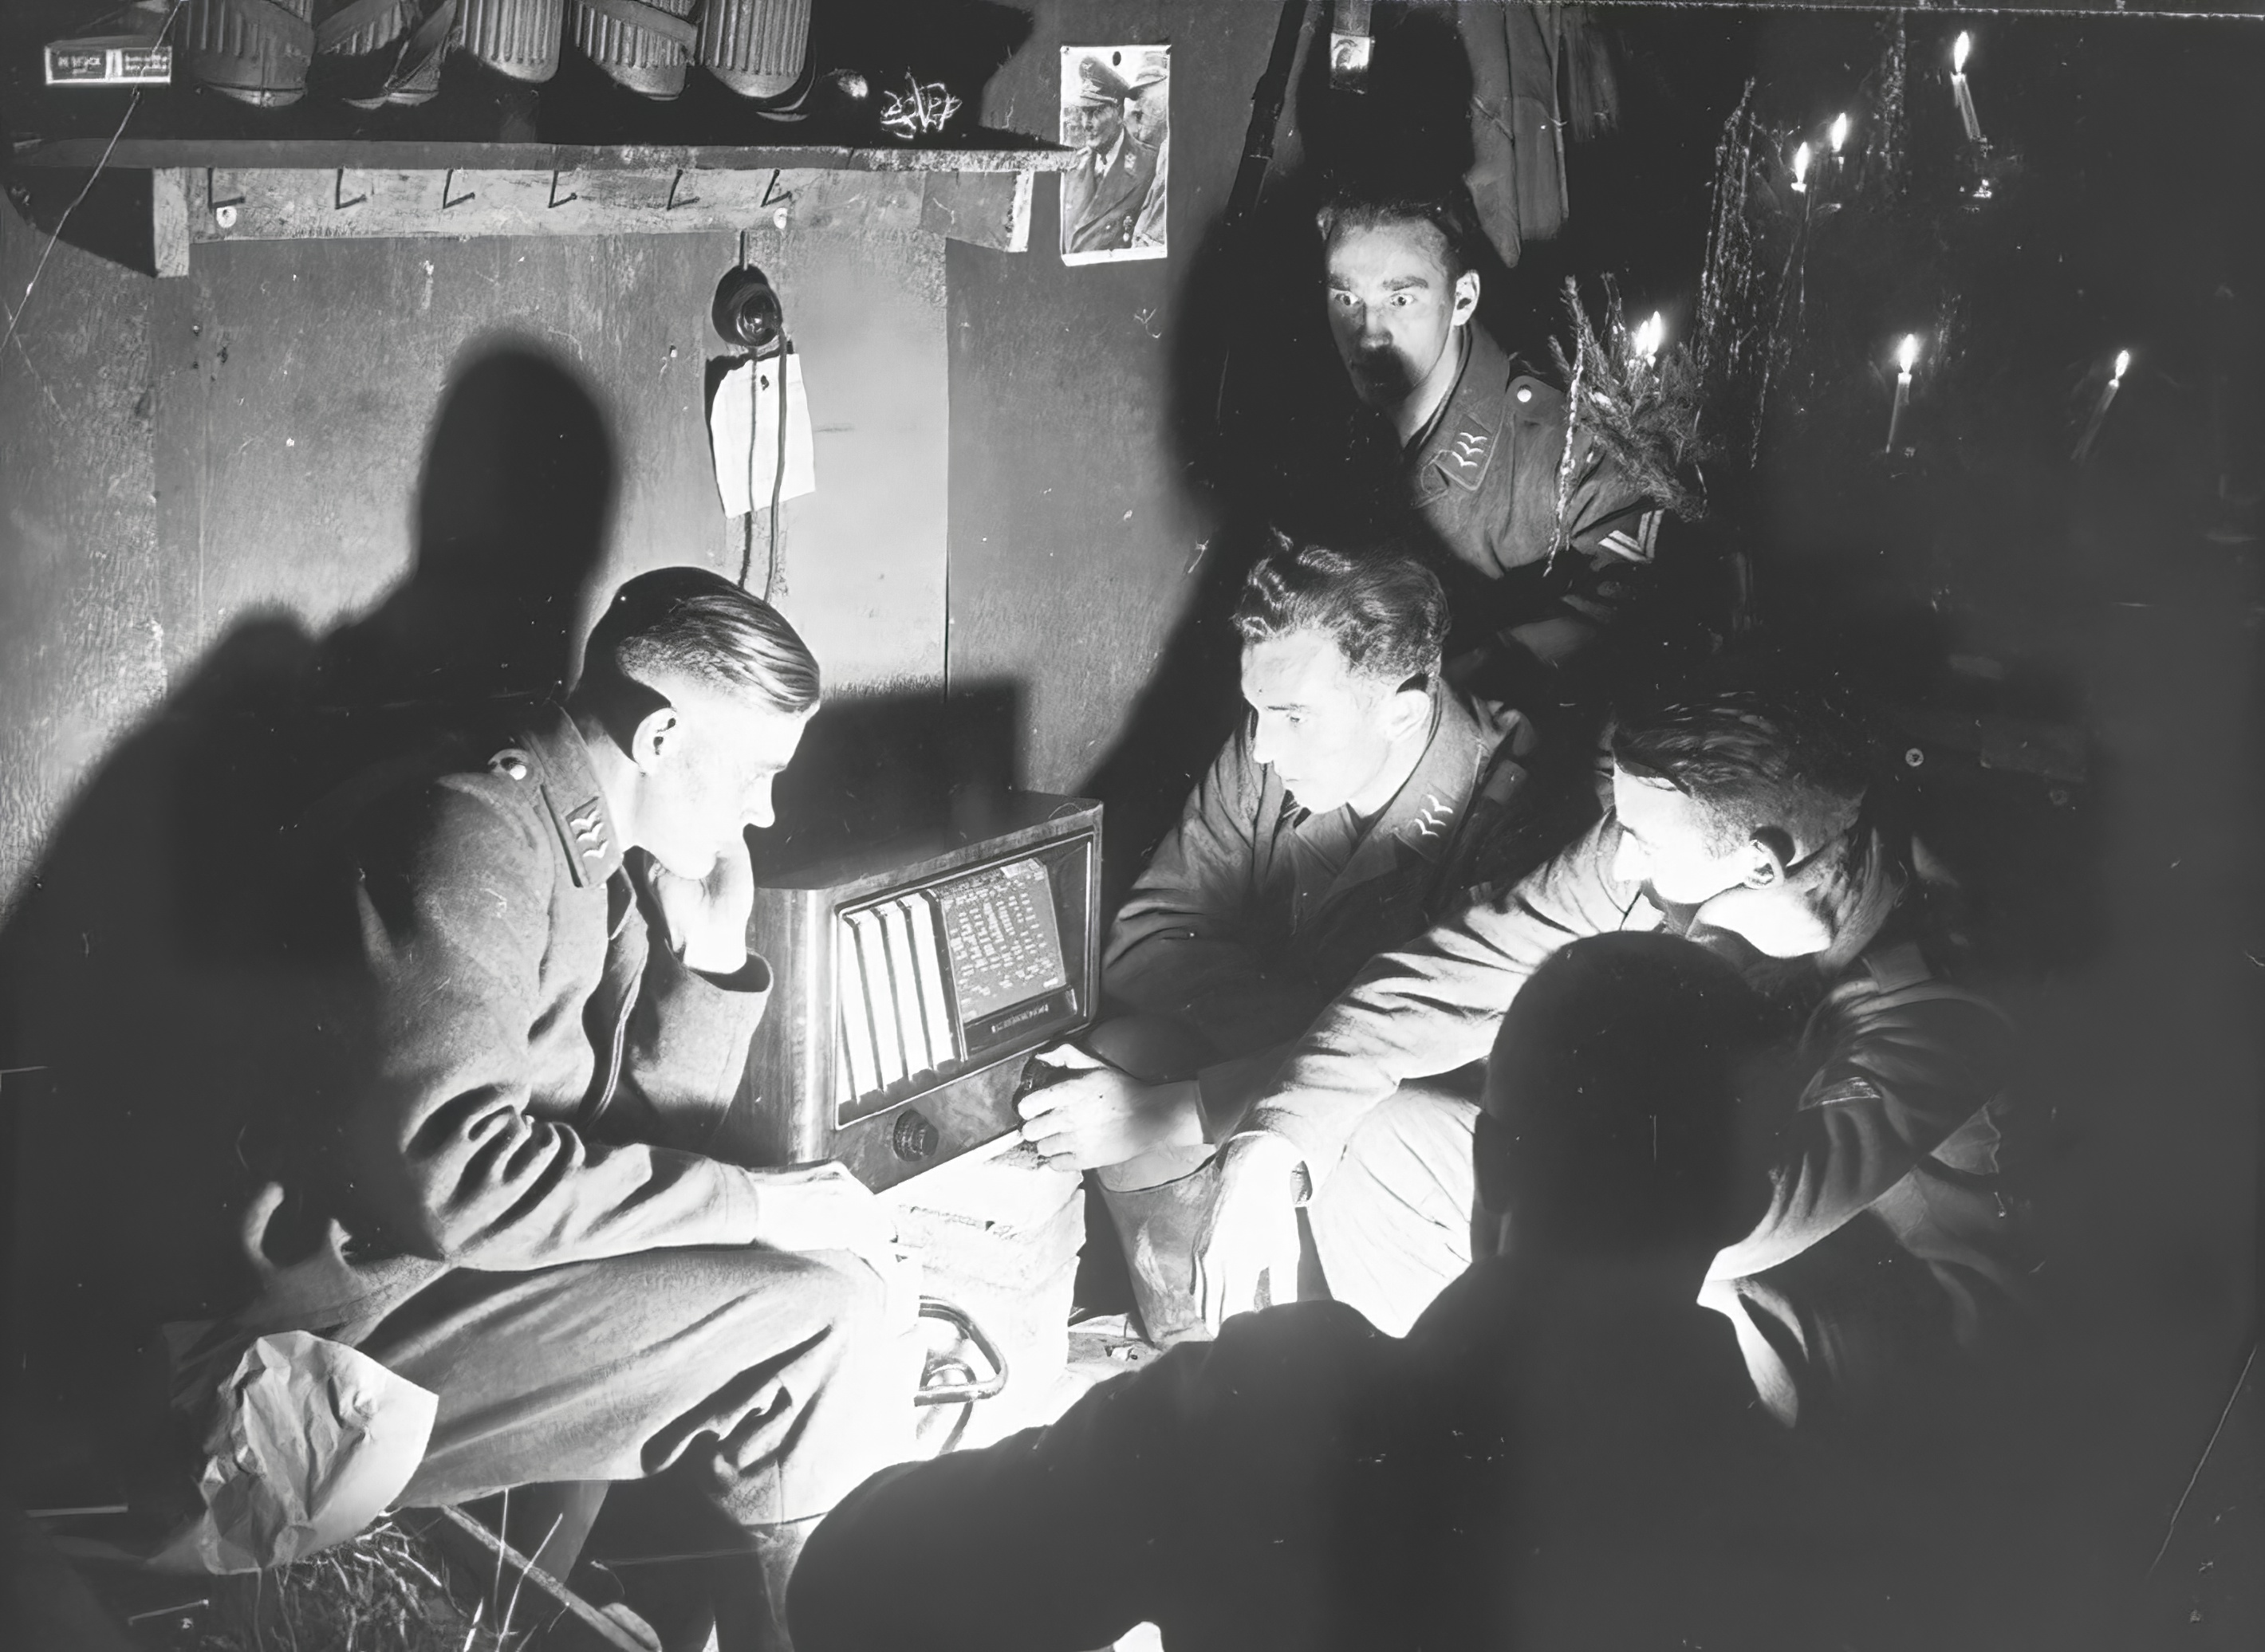 Luftwaffe personnel listening to the radio during Xmas period 12th Dec 1940 NIOD